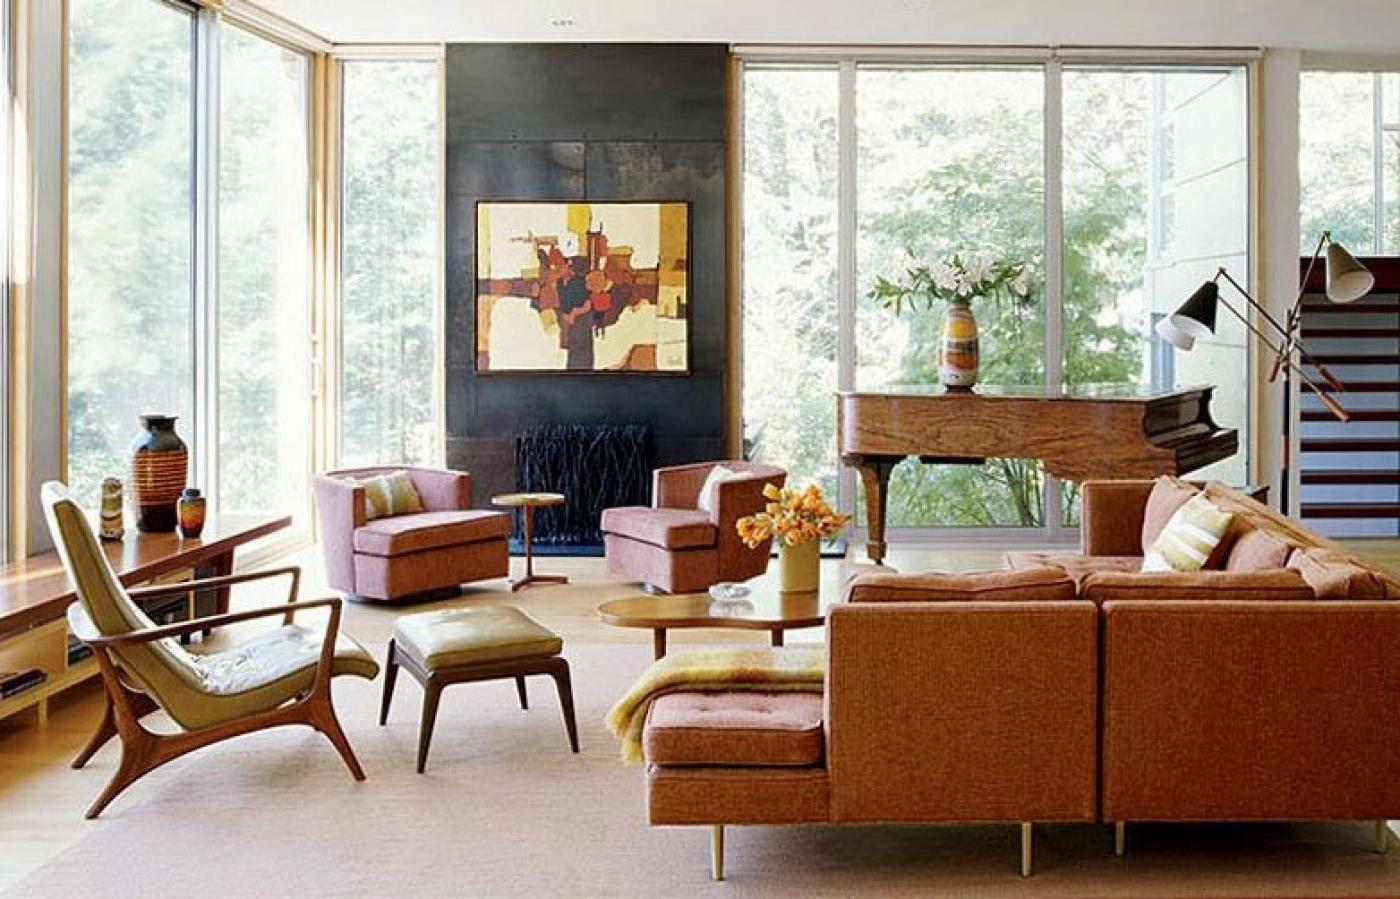 An Autumn Woodland Walk Inspires A Warm and Expressive Home by Amy Lau